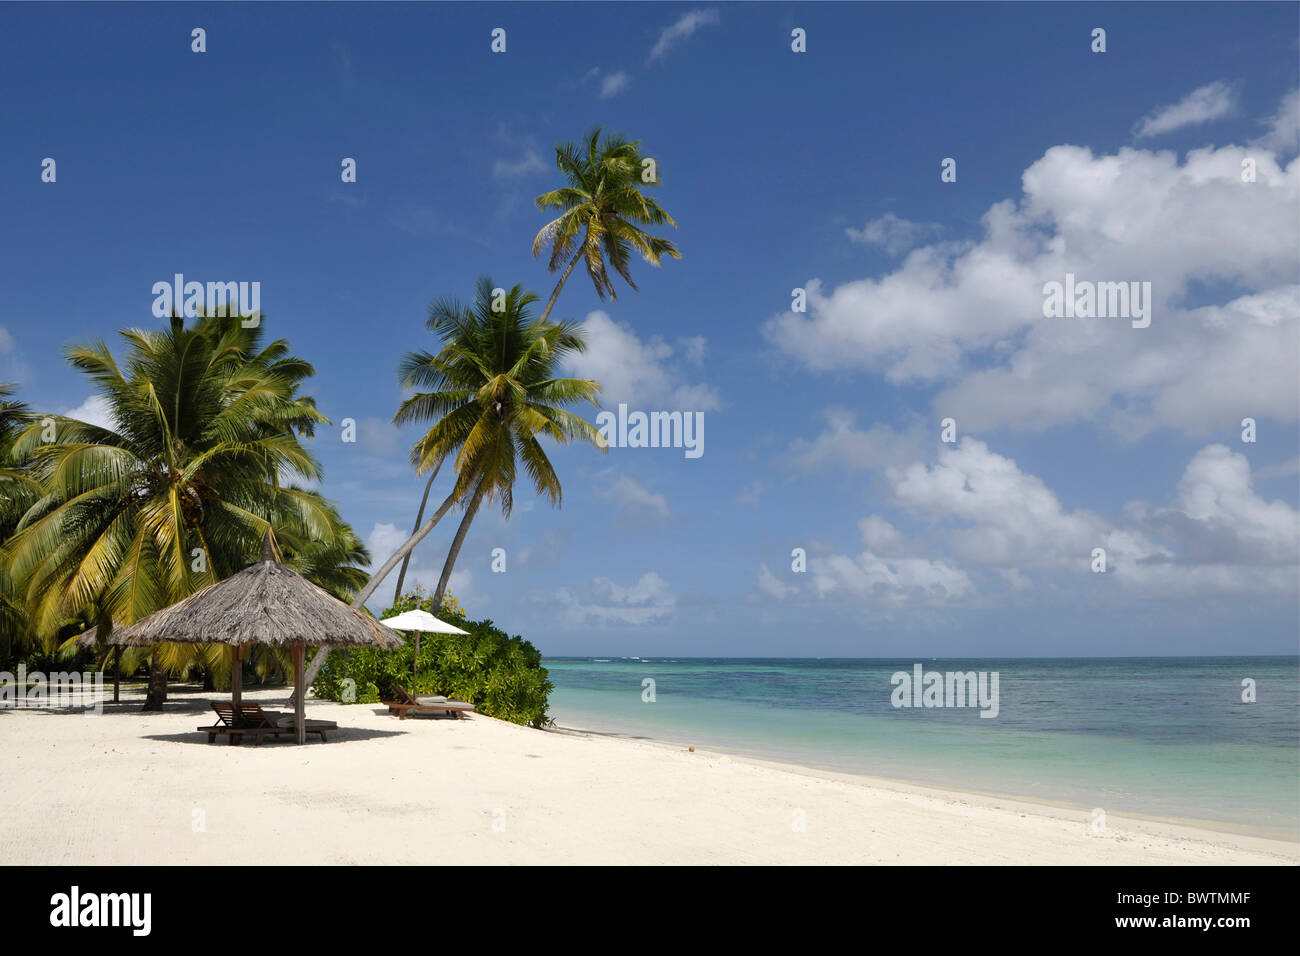 Sandy beach on Desroches Island, Seychelles - Stock Image